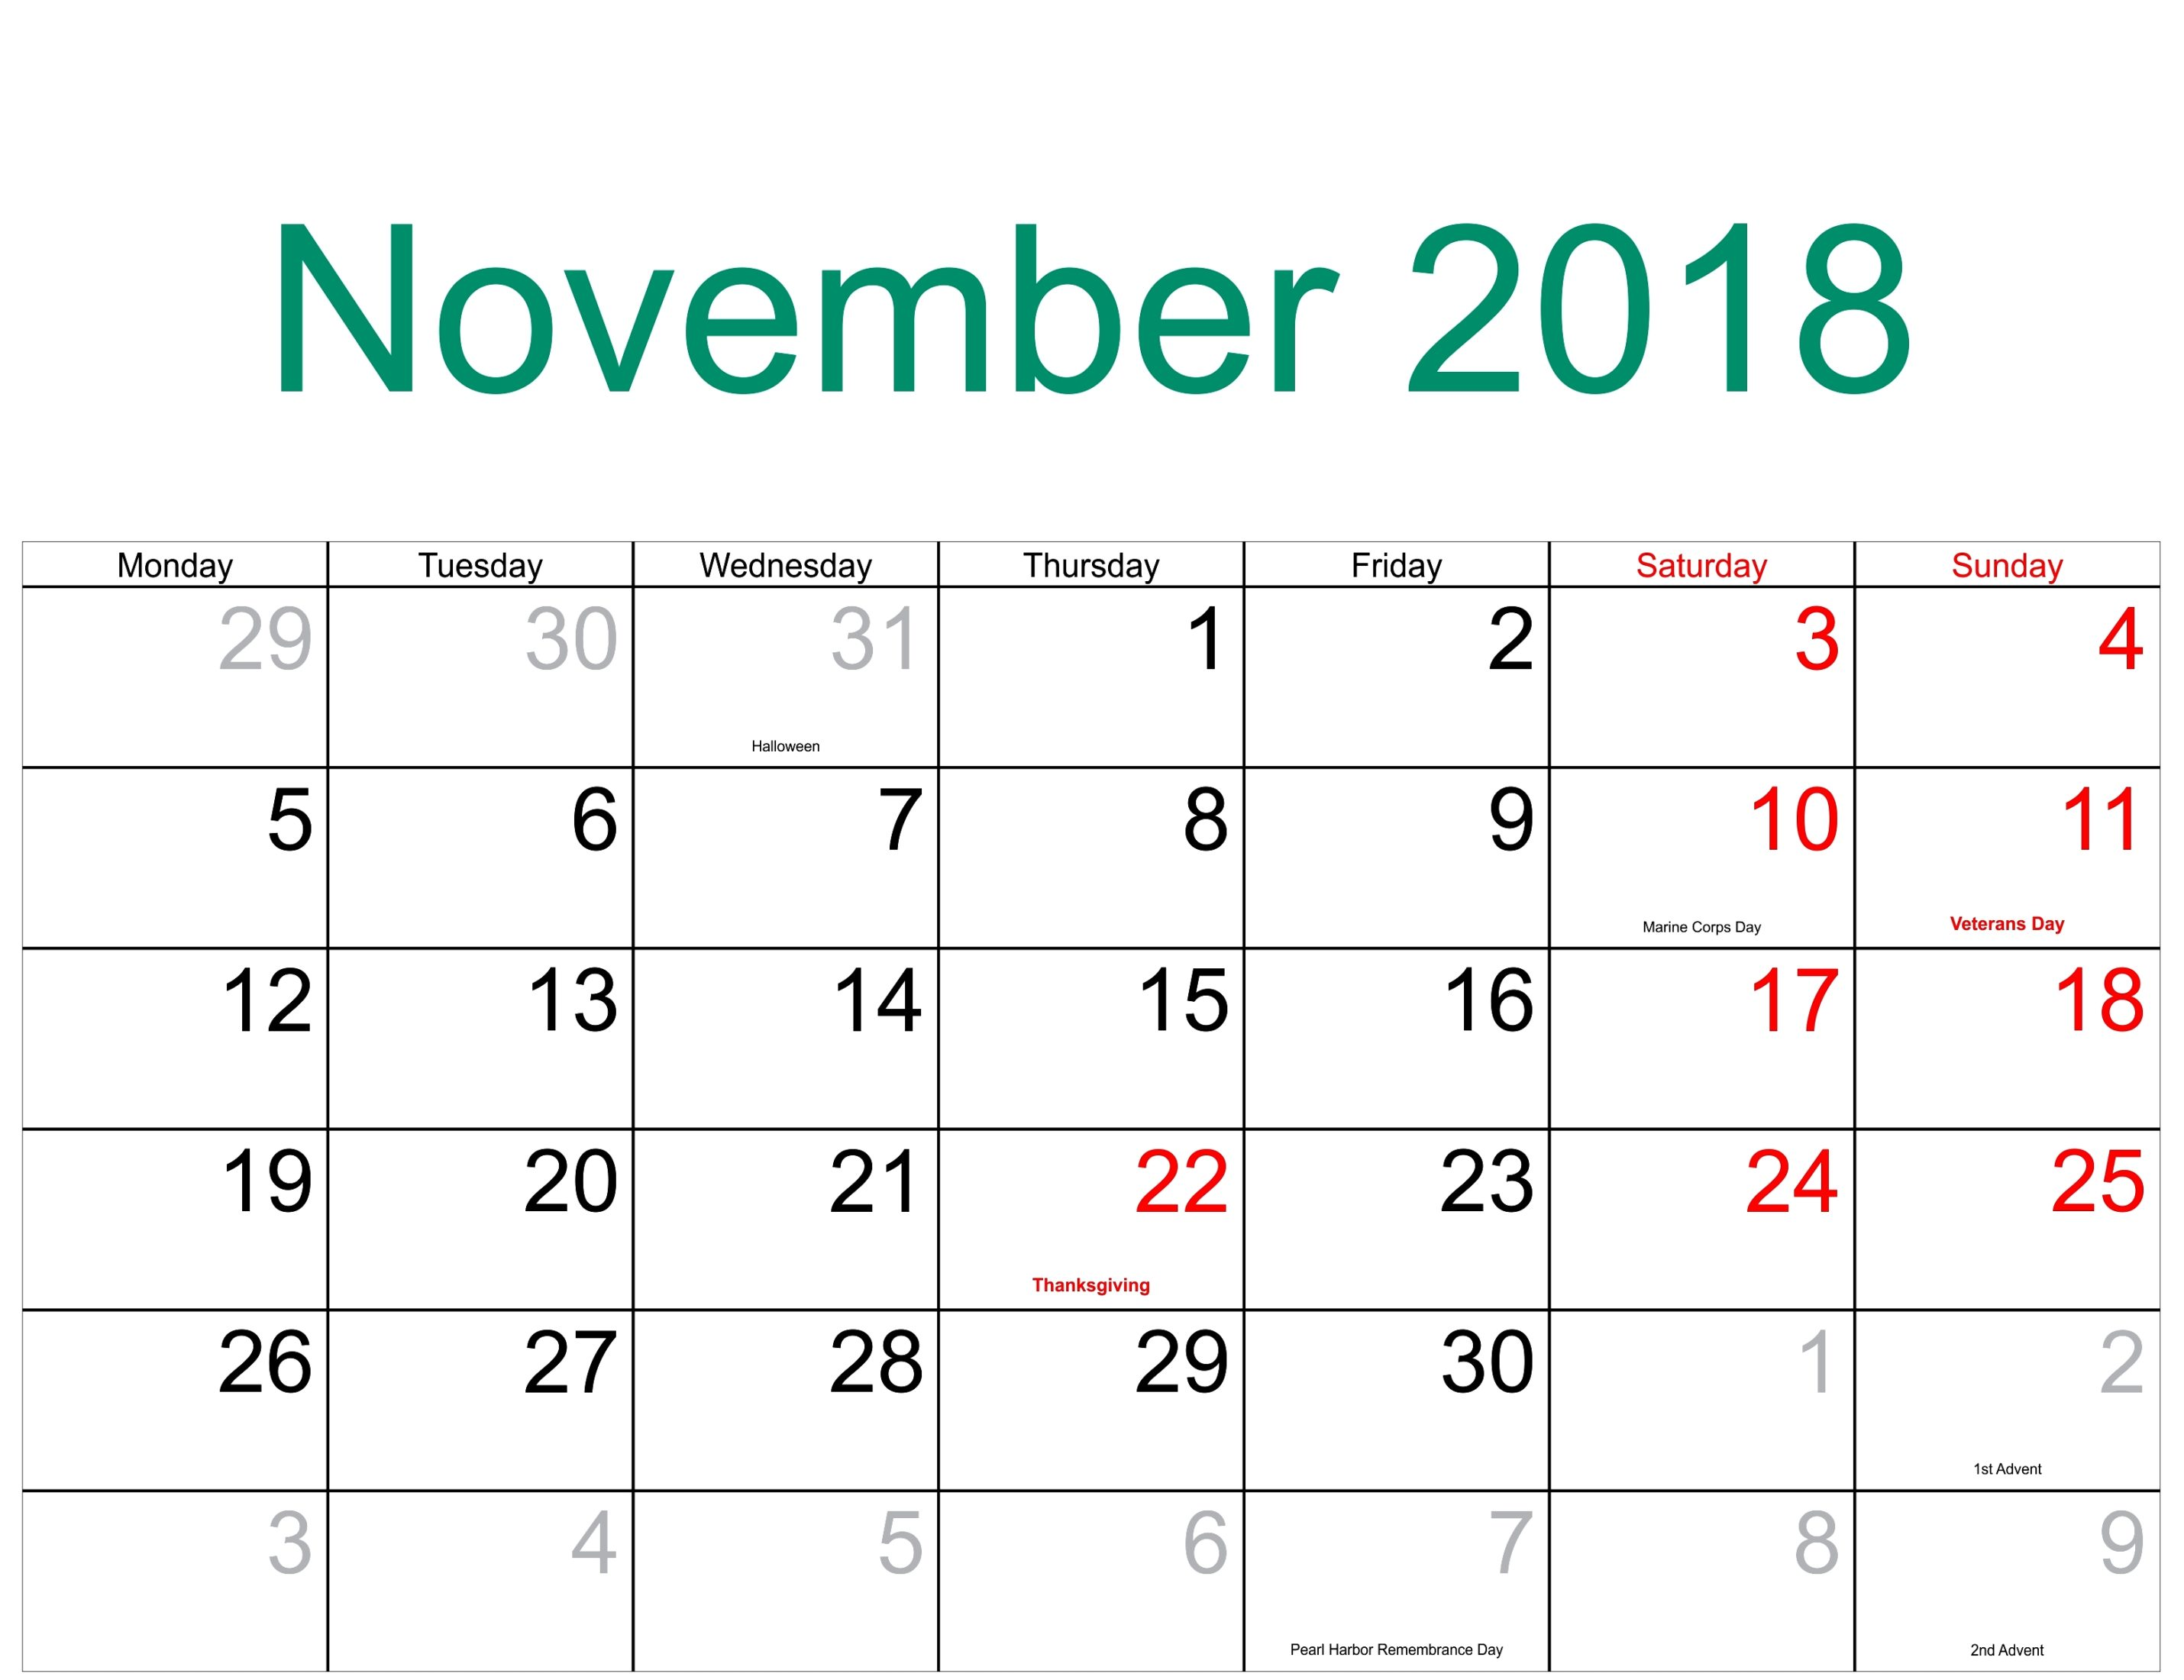 November 2018 Calendar With Holidays 2018 Calendar Printable  - Shoot Design